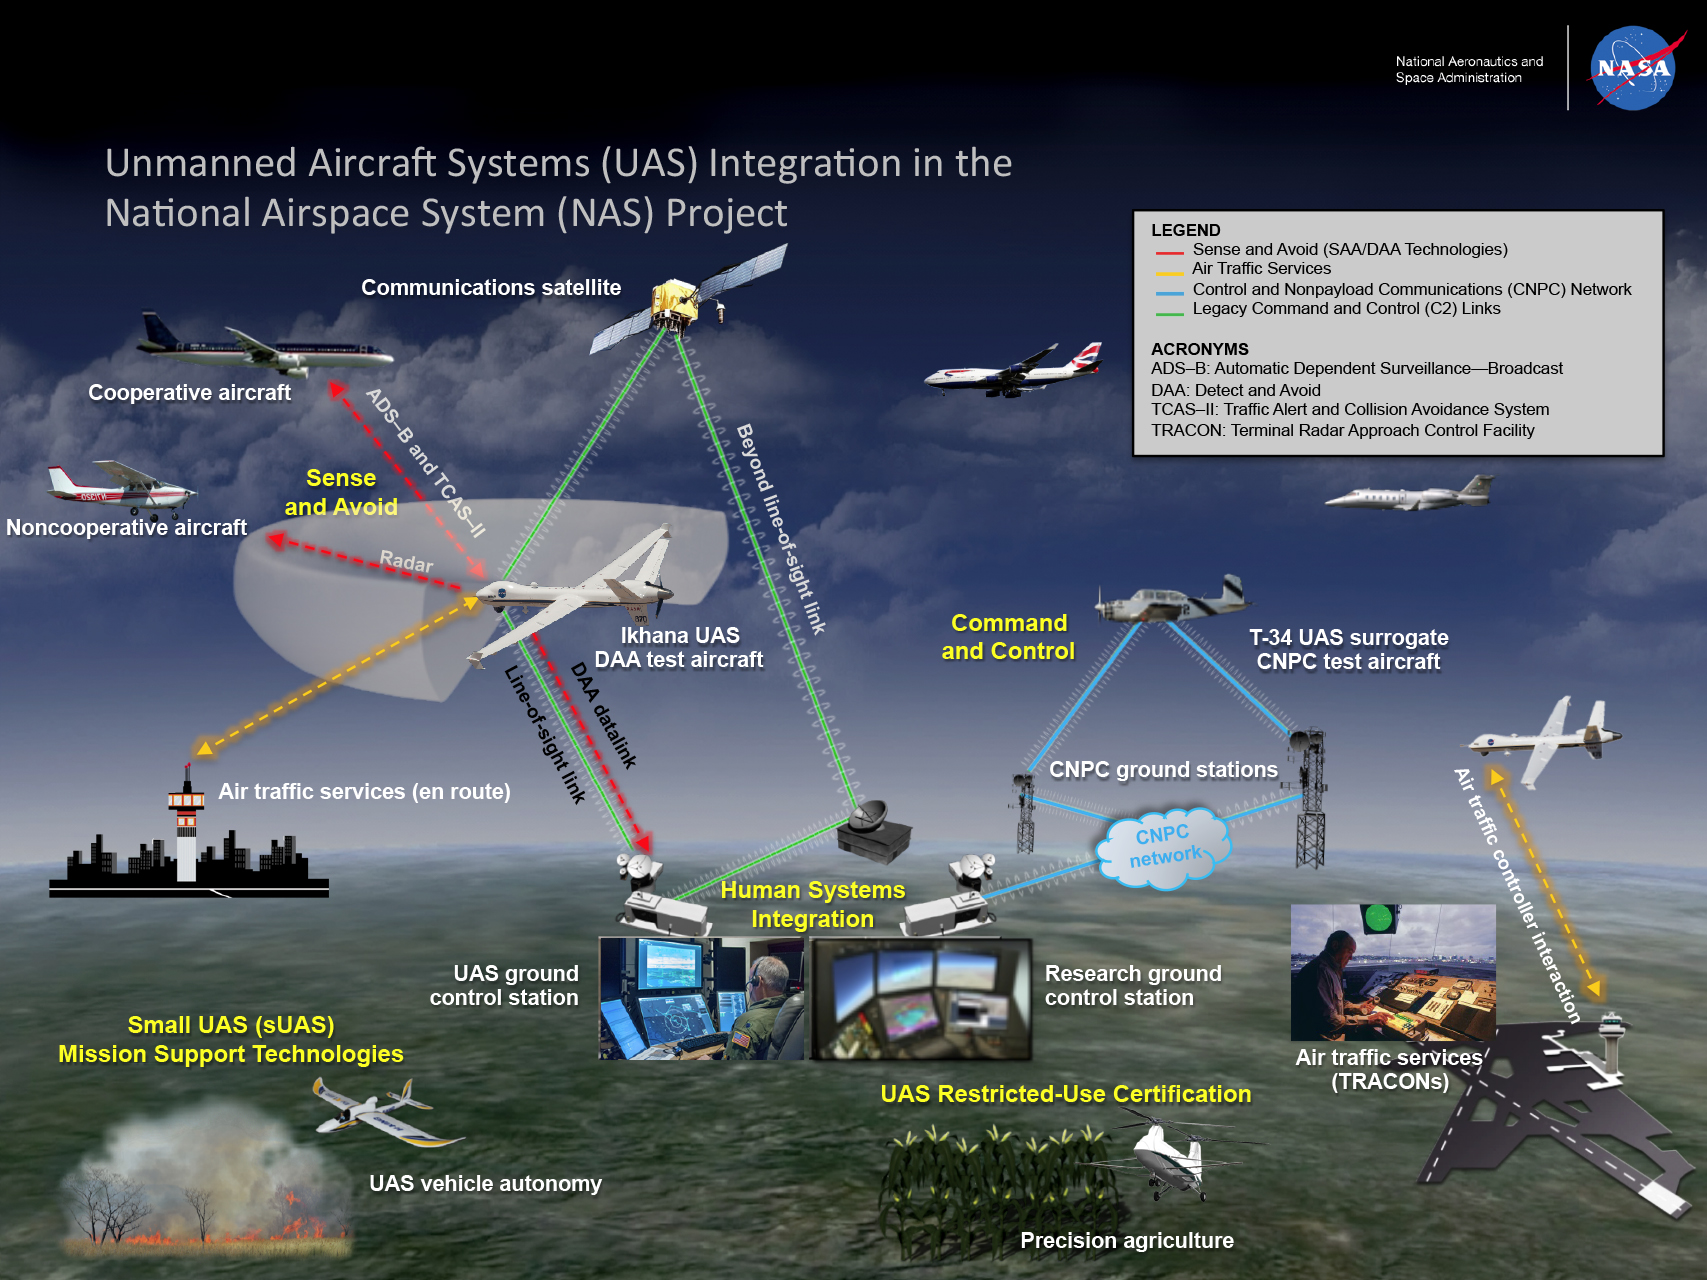 Uas integration in the nas about us nasa graphic displaying the unmanned aircraft systems uas integration in the national airspace systems publicscrutiny Choice Image